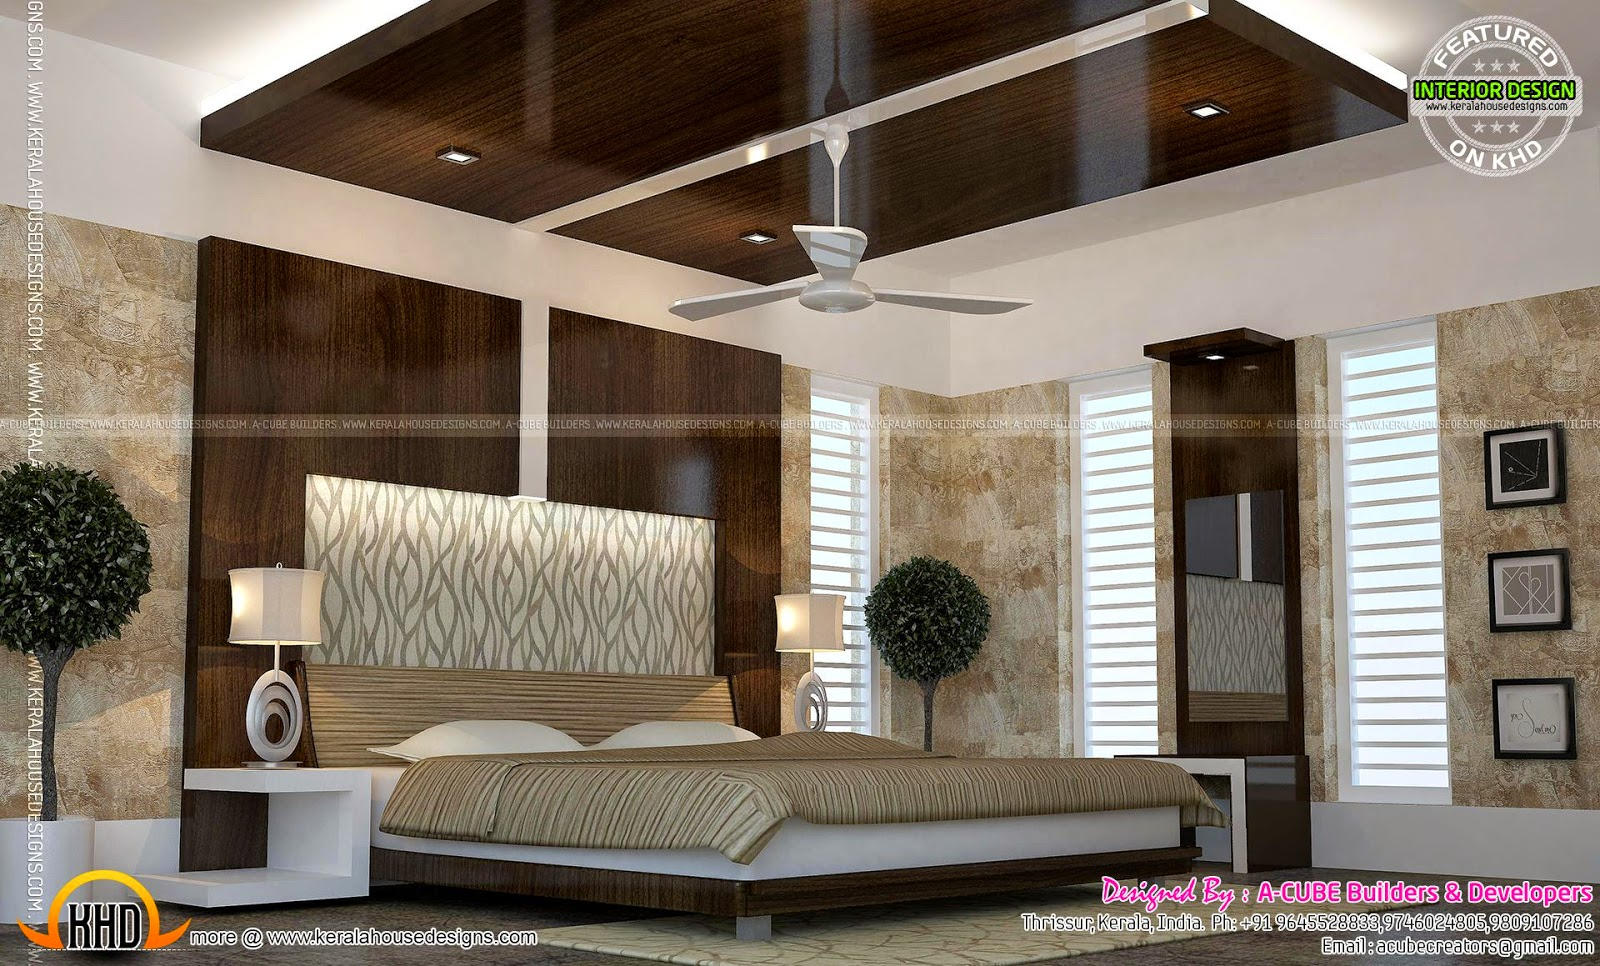 Kerala interior design ideas kerala home design and Home interior design bedroom